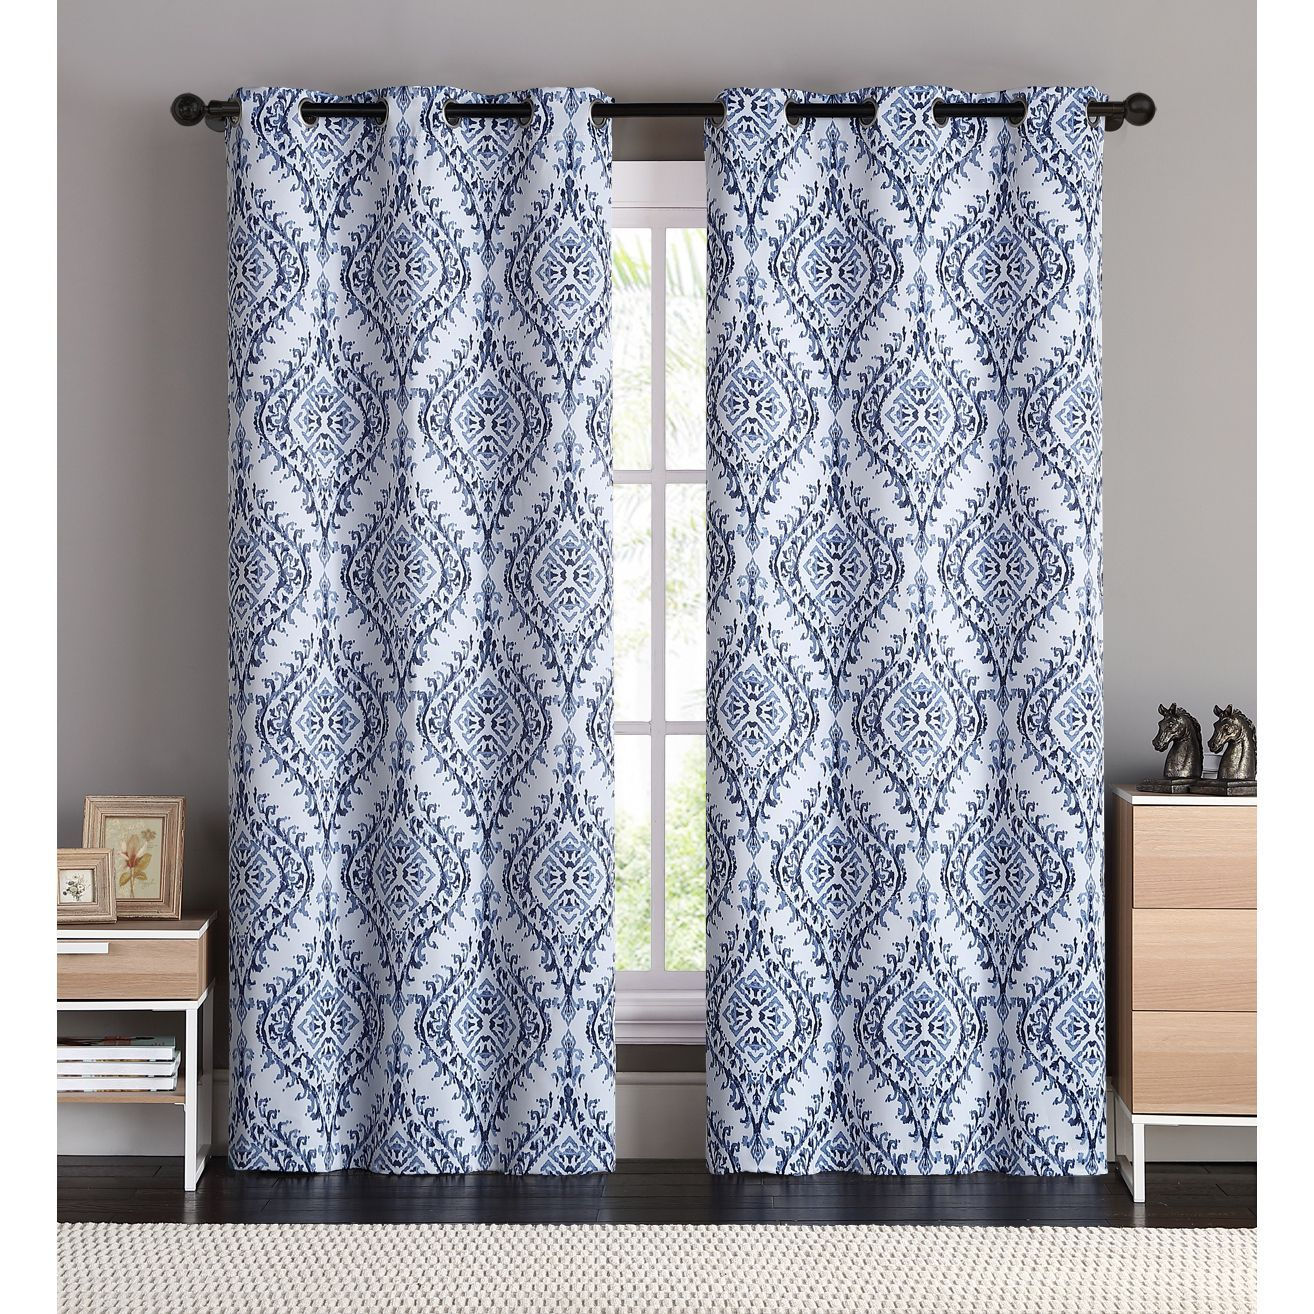 Curtain pair overstock shopping great deals on lights out curtains - The London Blackout Curtain Pair Is Not Only Stylish But Also Very Functional The Curtains